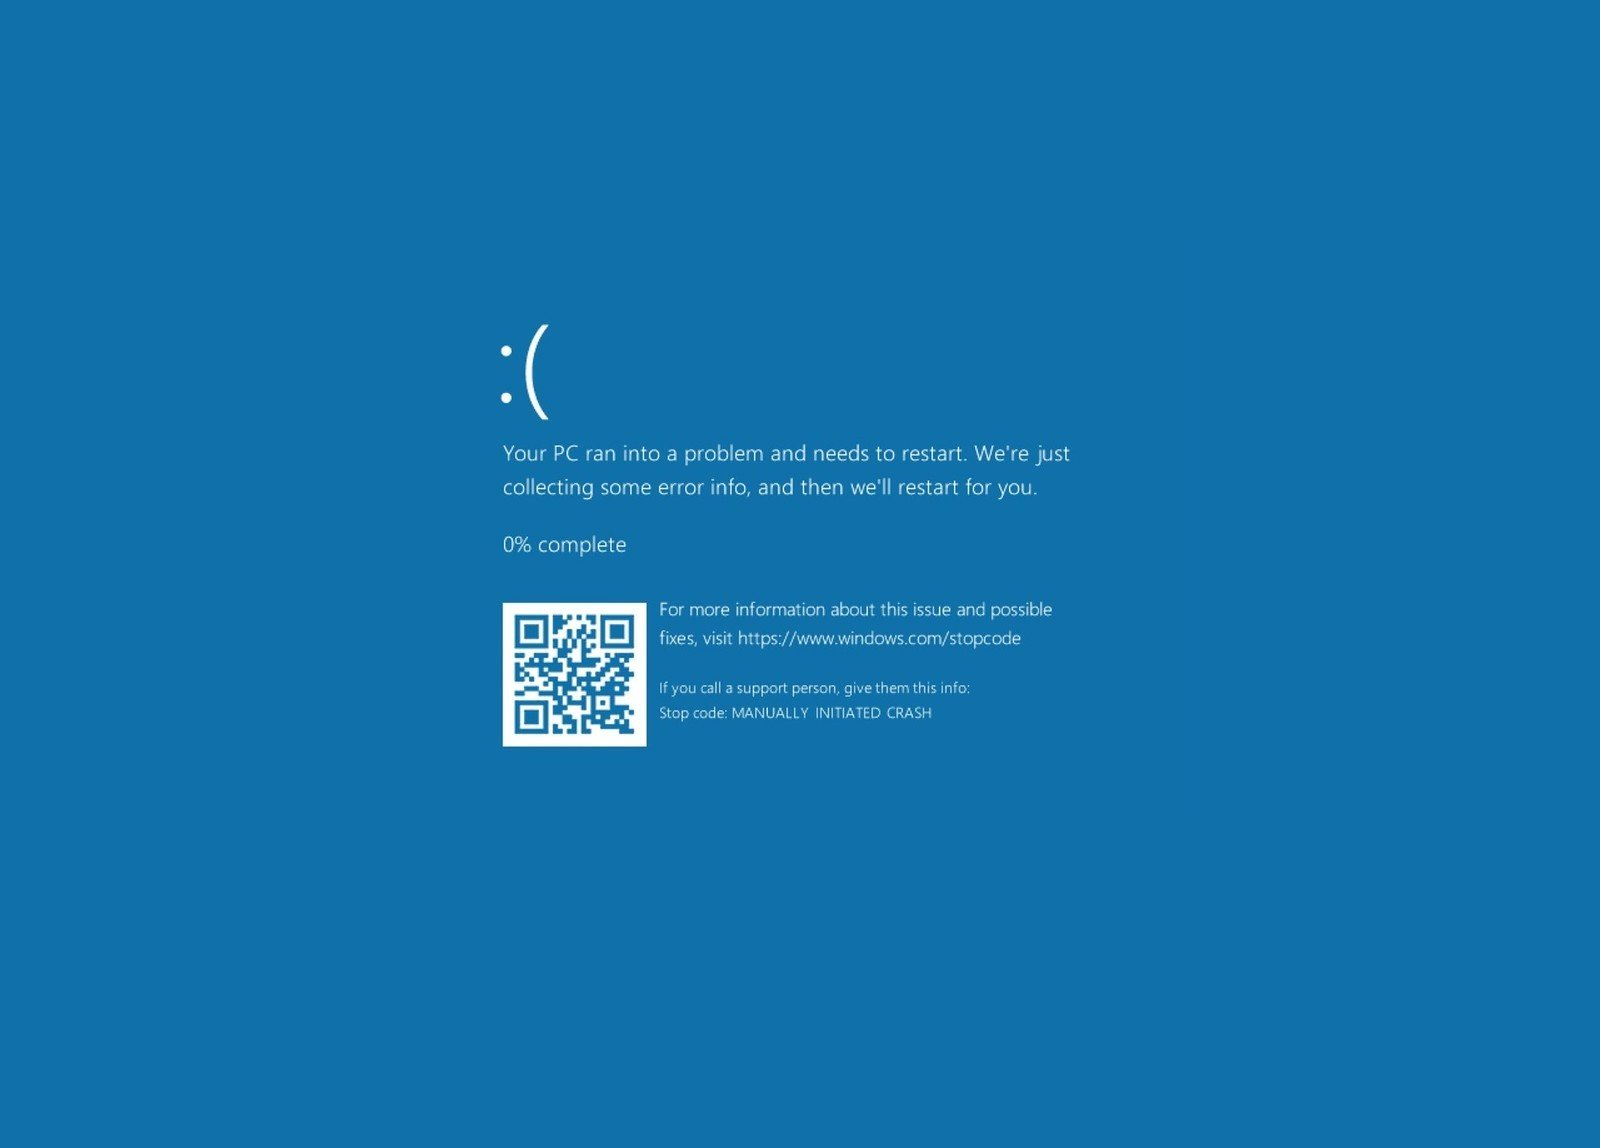 How to troubleshoot and fix Windows 10 blue screen errors.